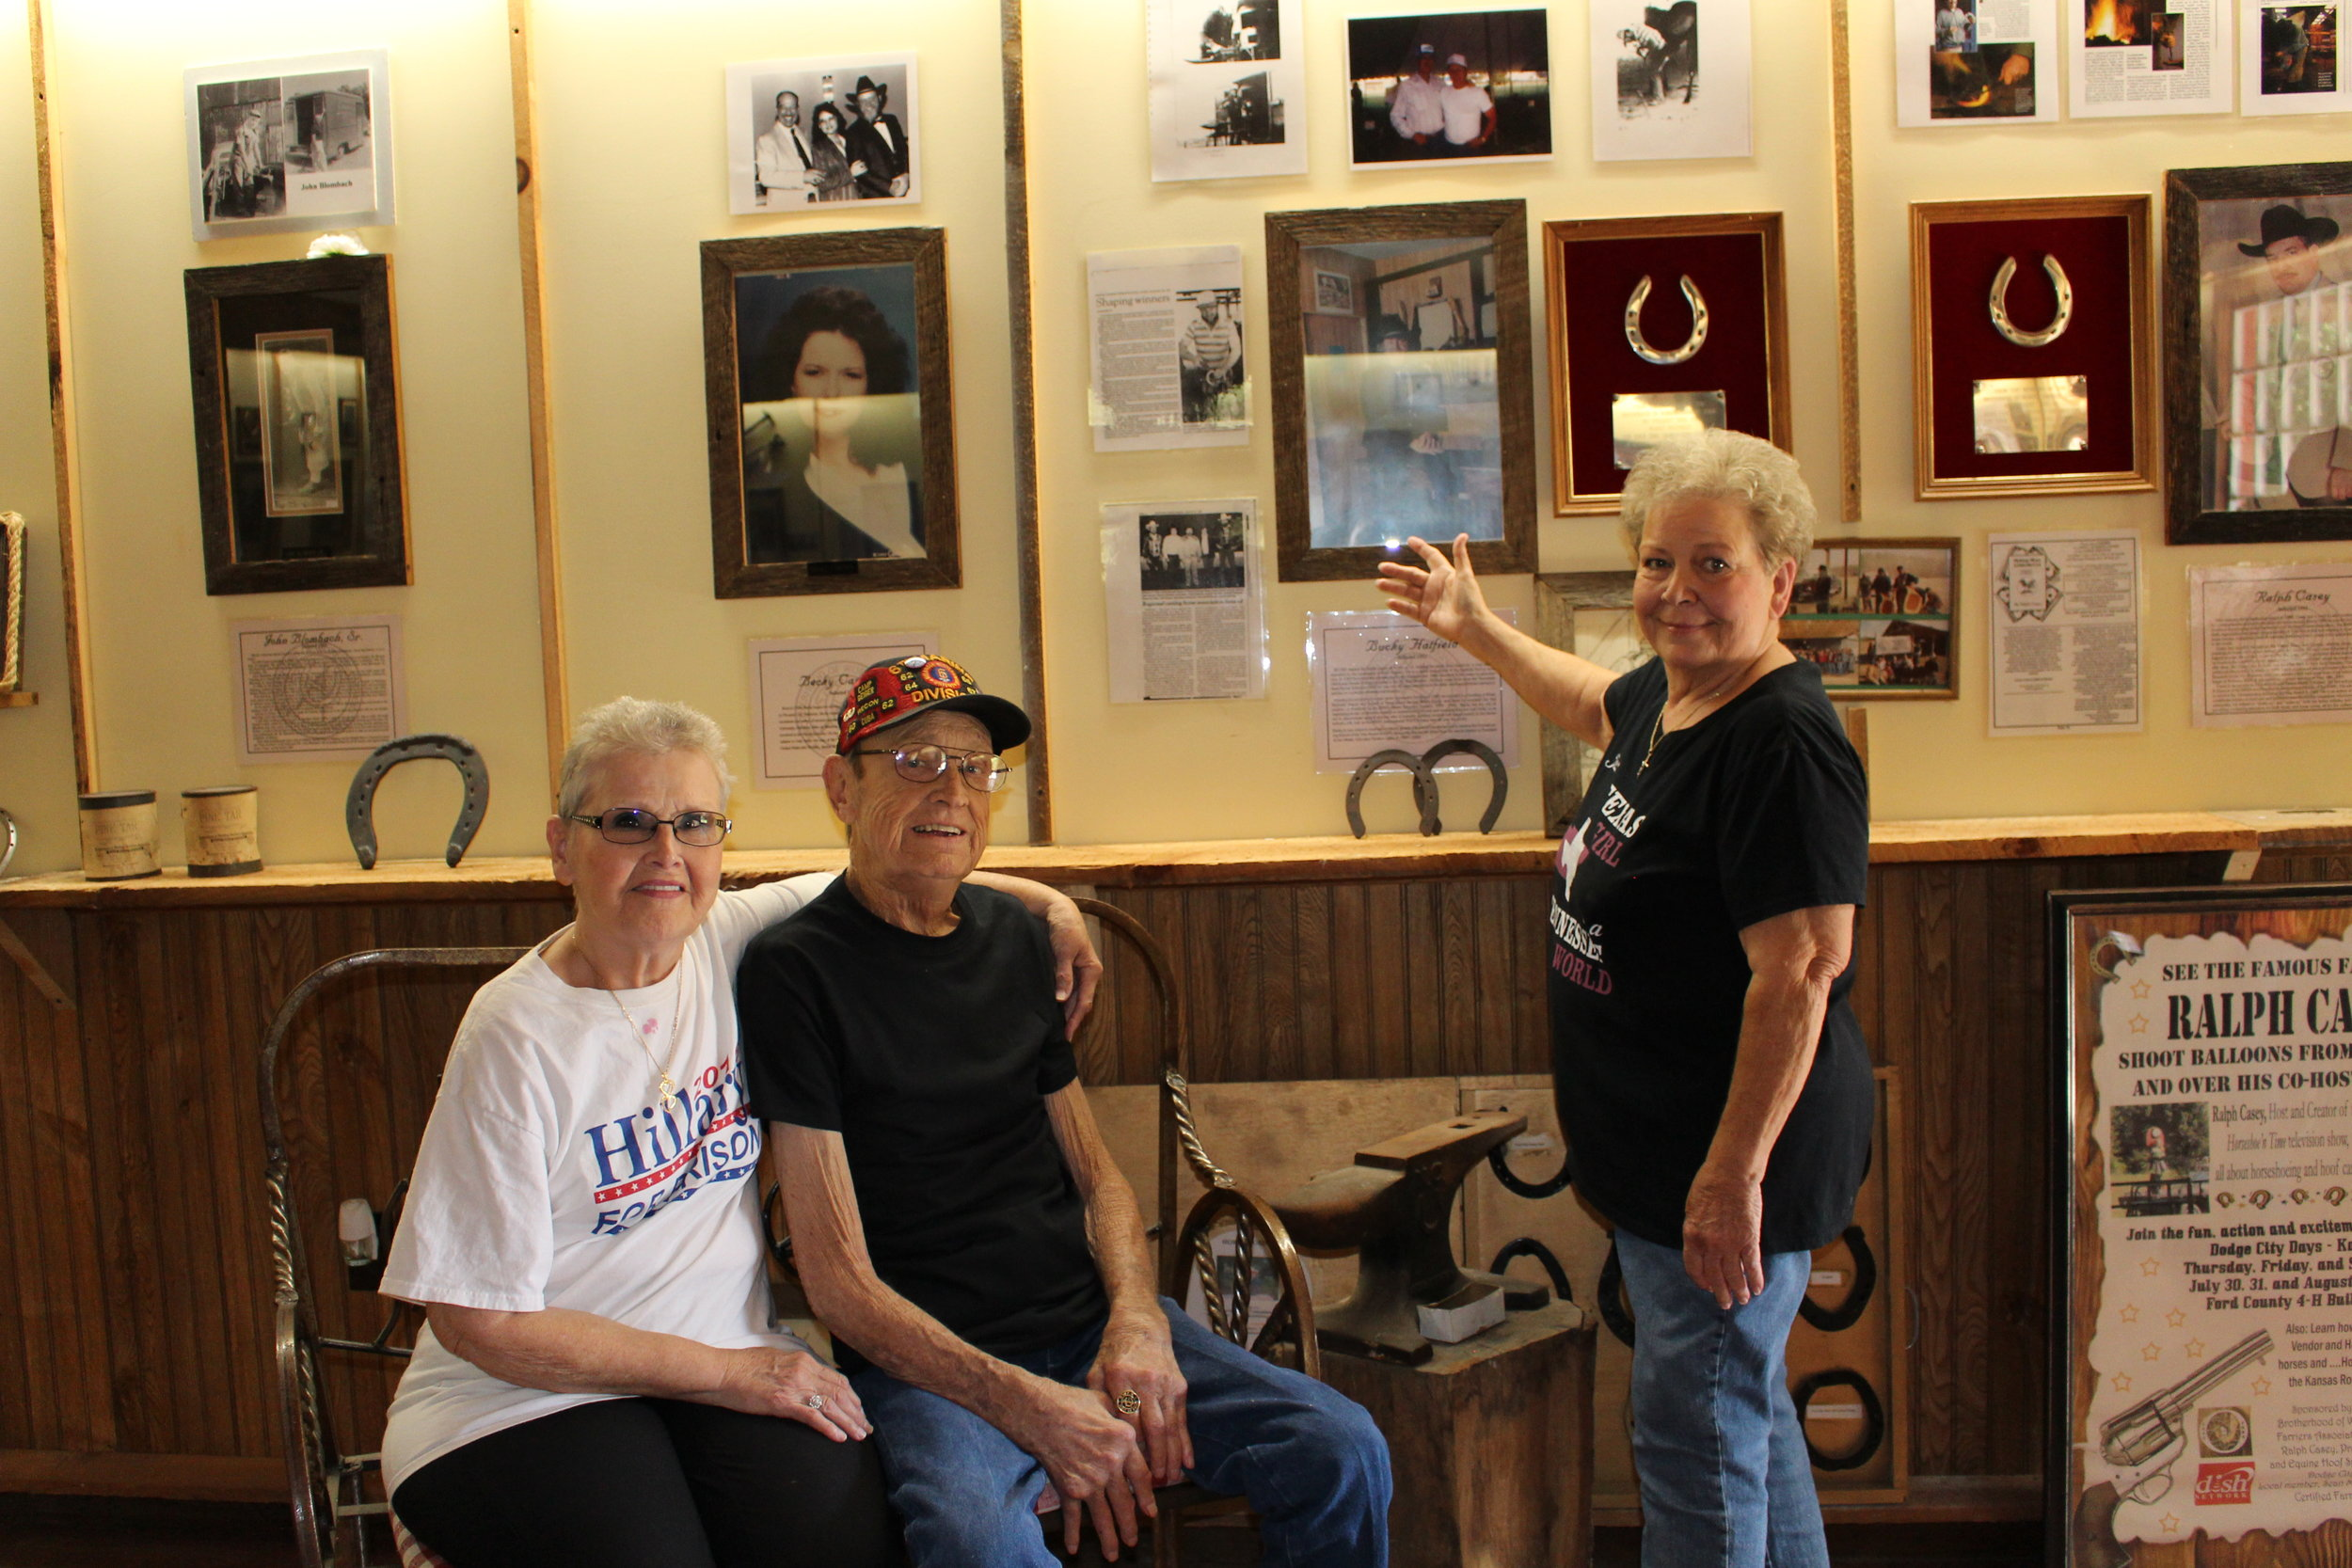 2016 Bucky Hatfield with his sisters in front of his BWFA Hall of Fame display.